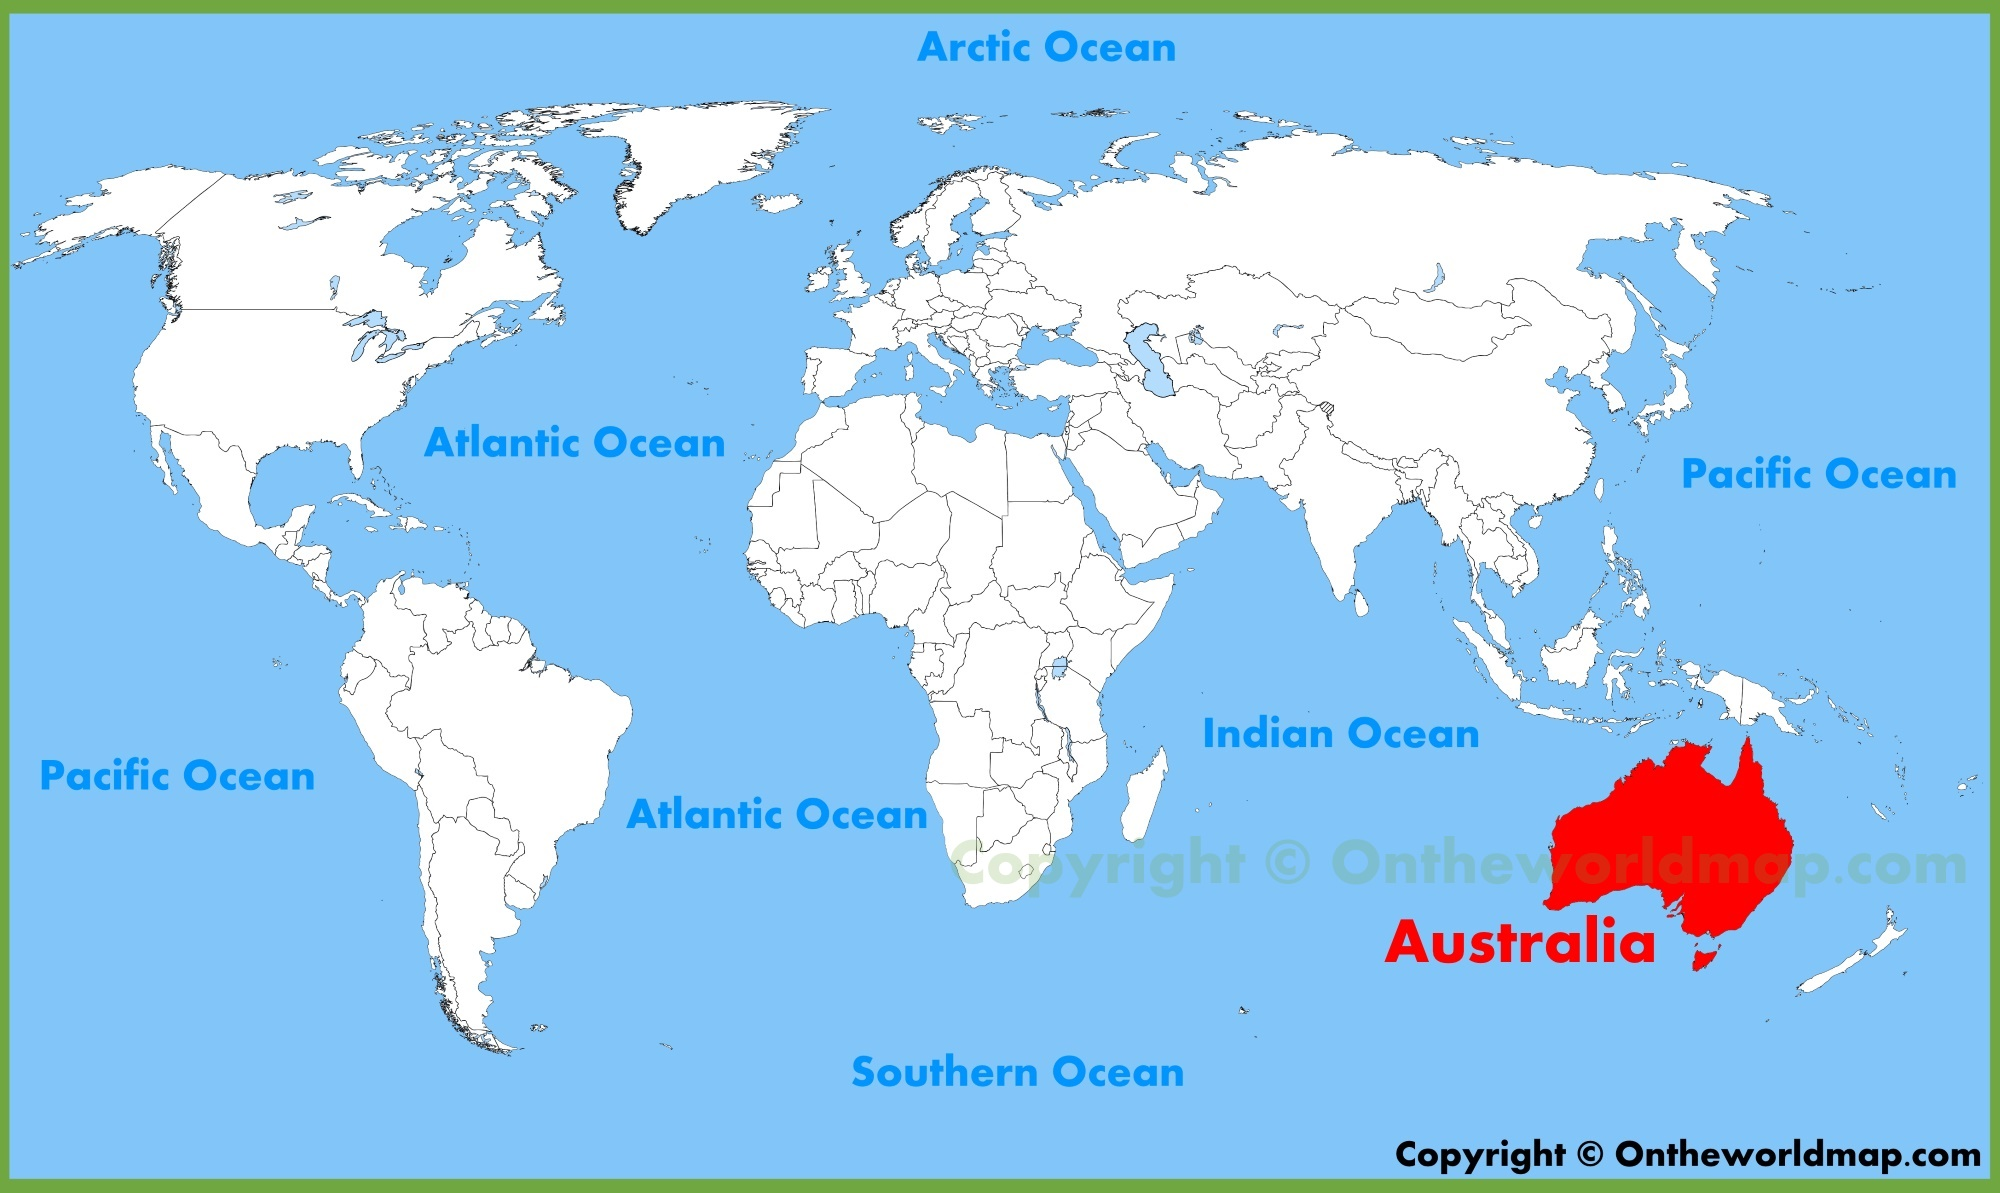 Australia Location Map.Australia Location On The World Map